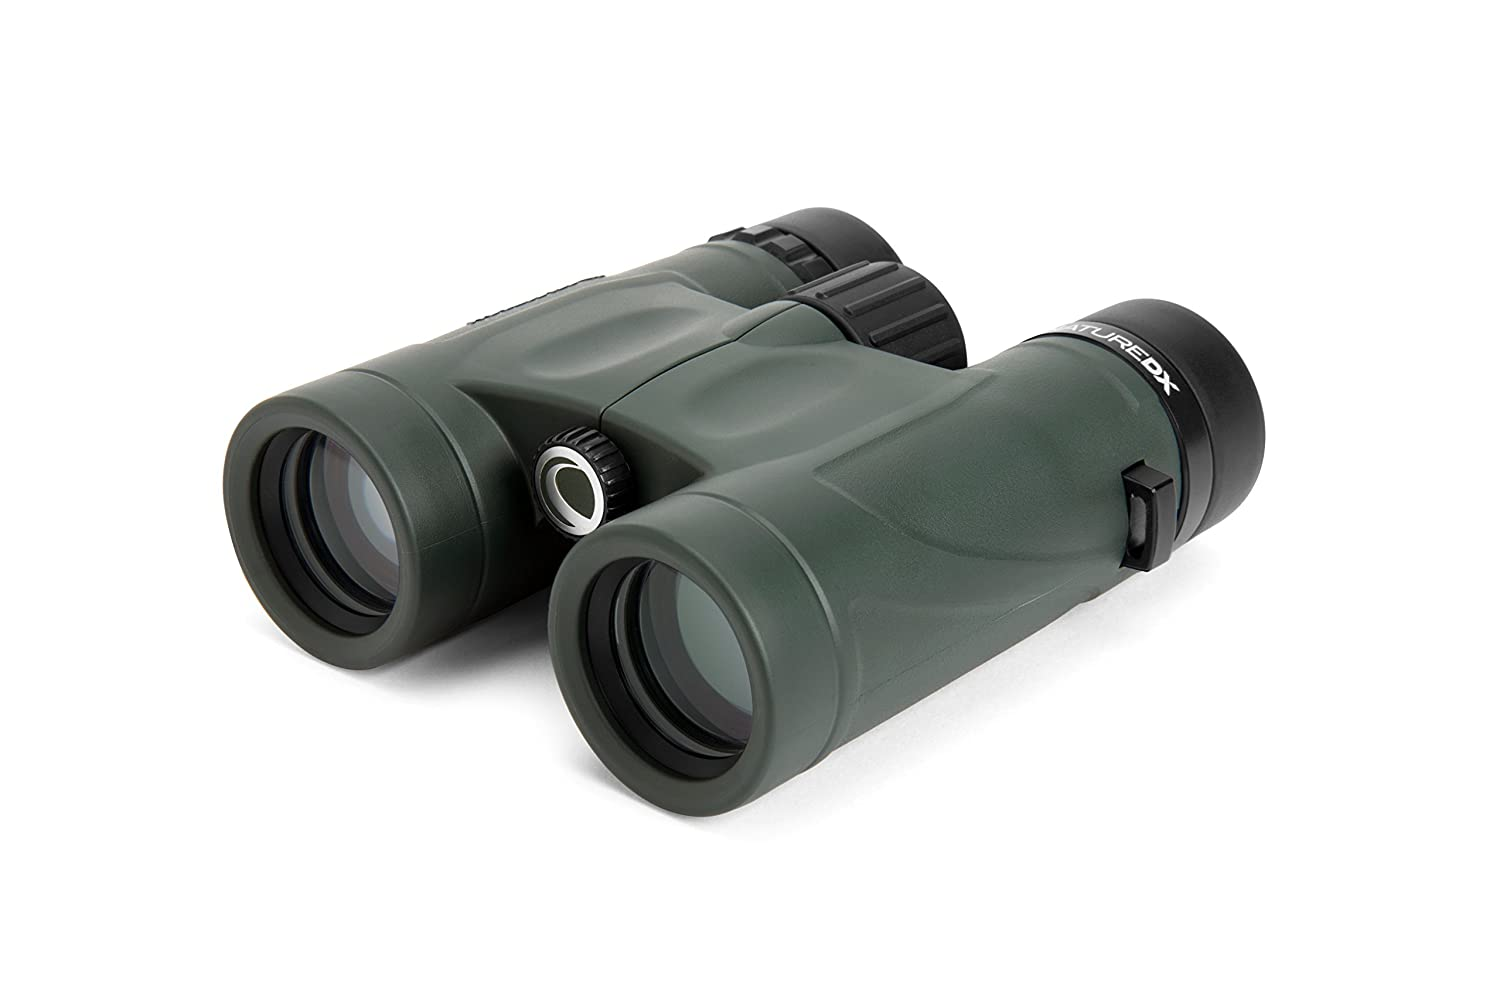 The Best Binoculars Under $100 2